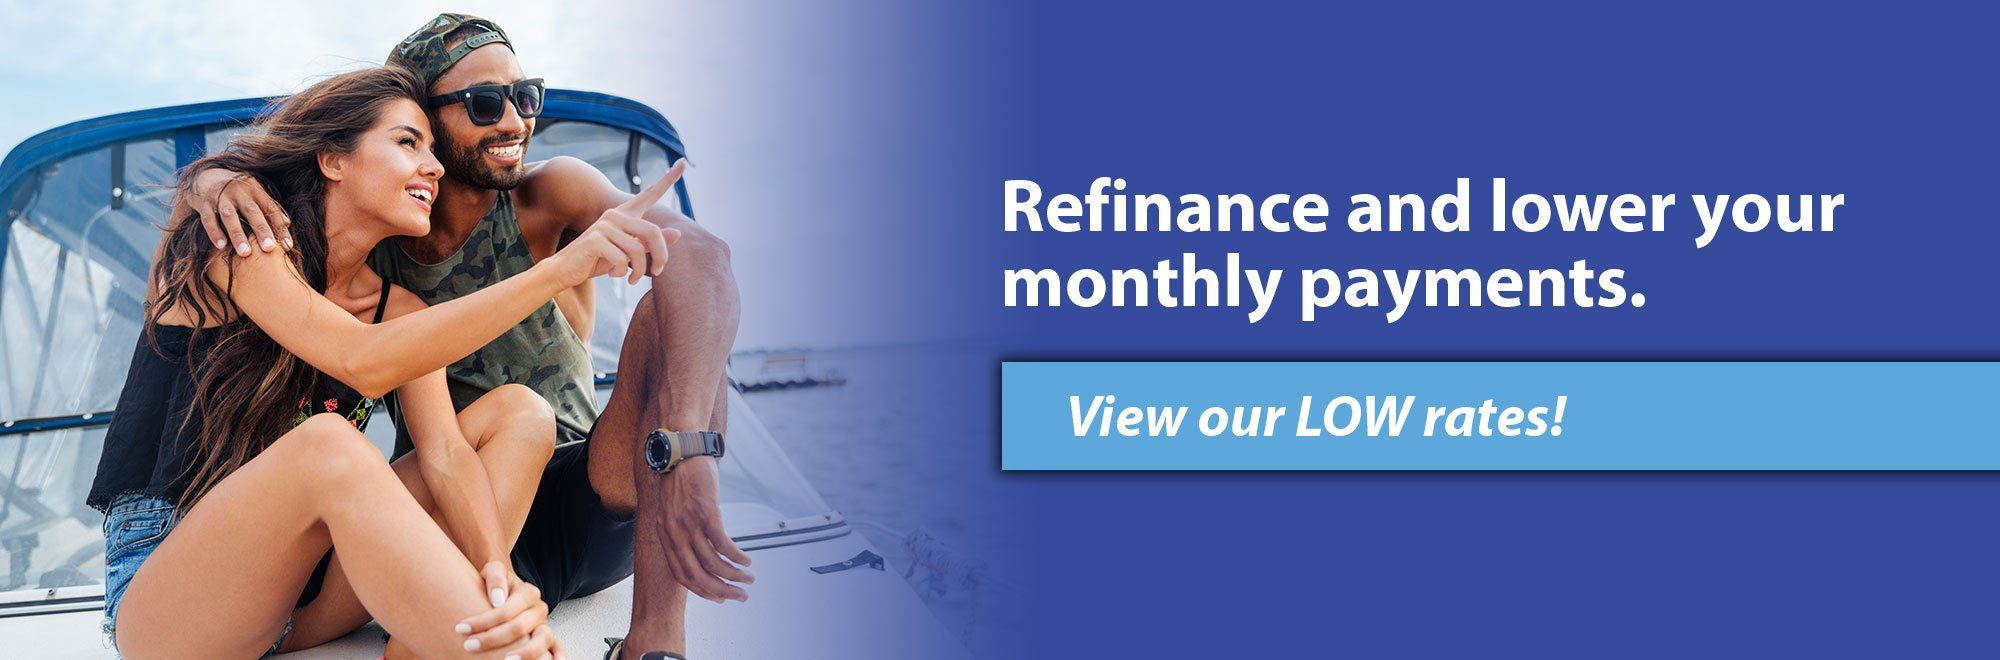 Refinance and lower your monthly payments. View our low rates.